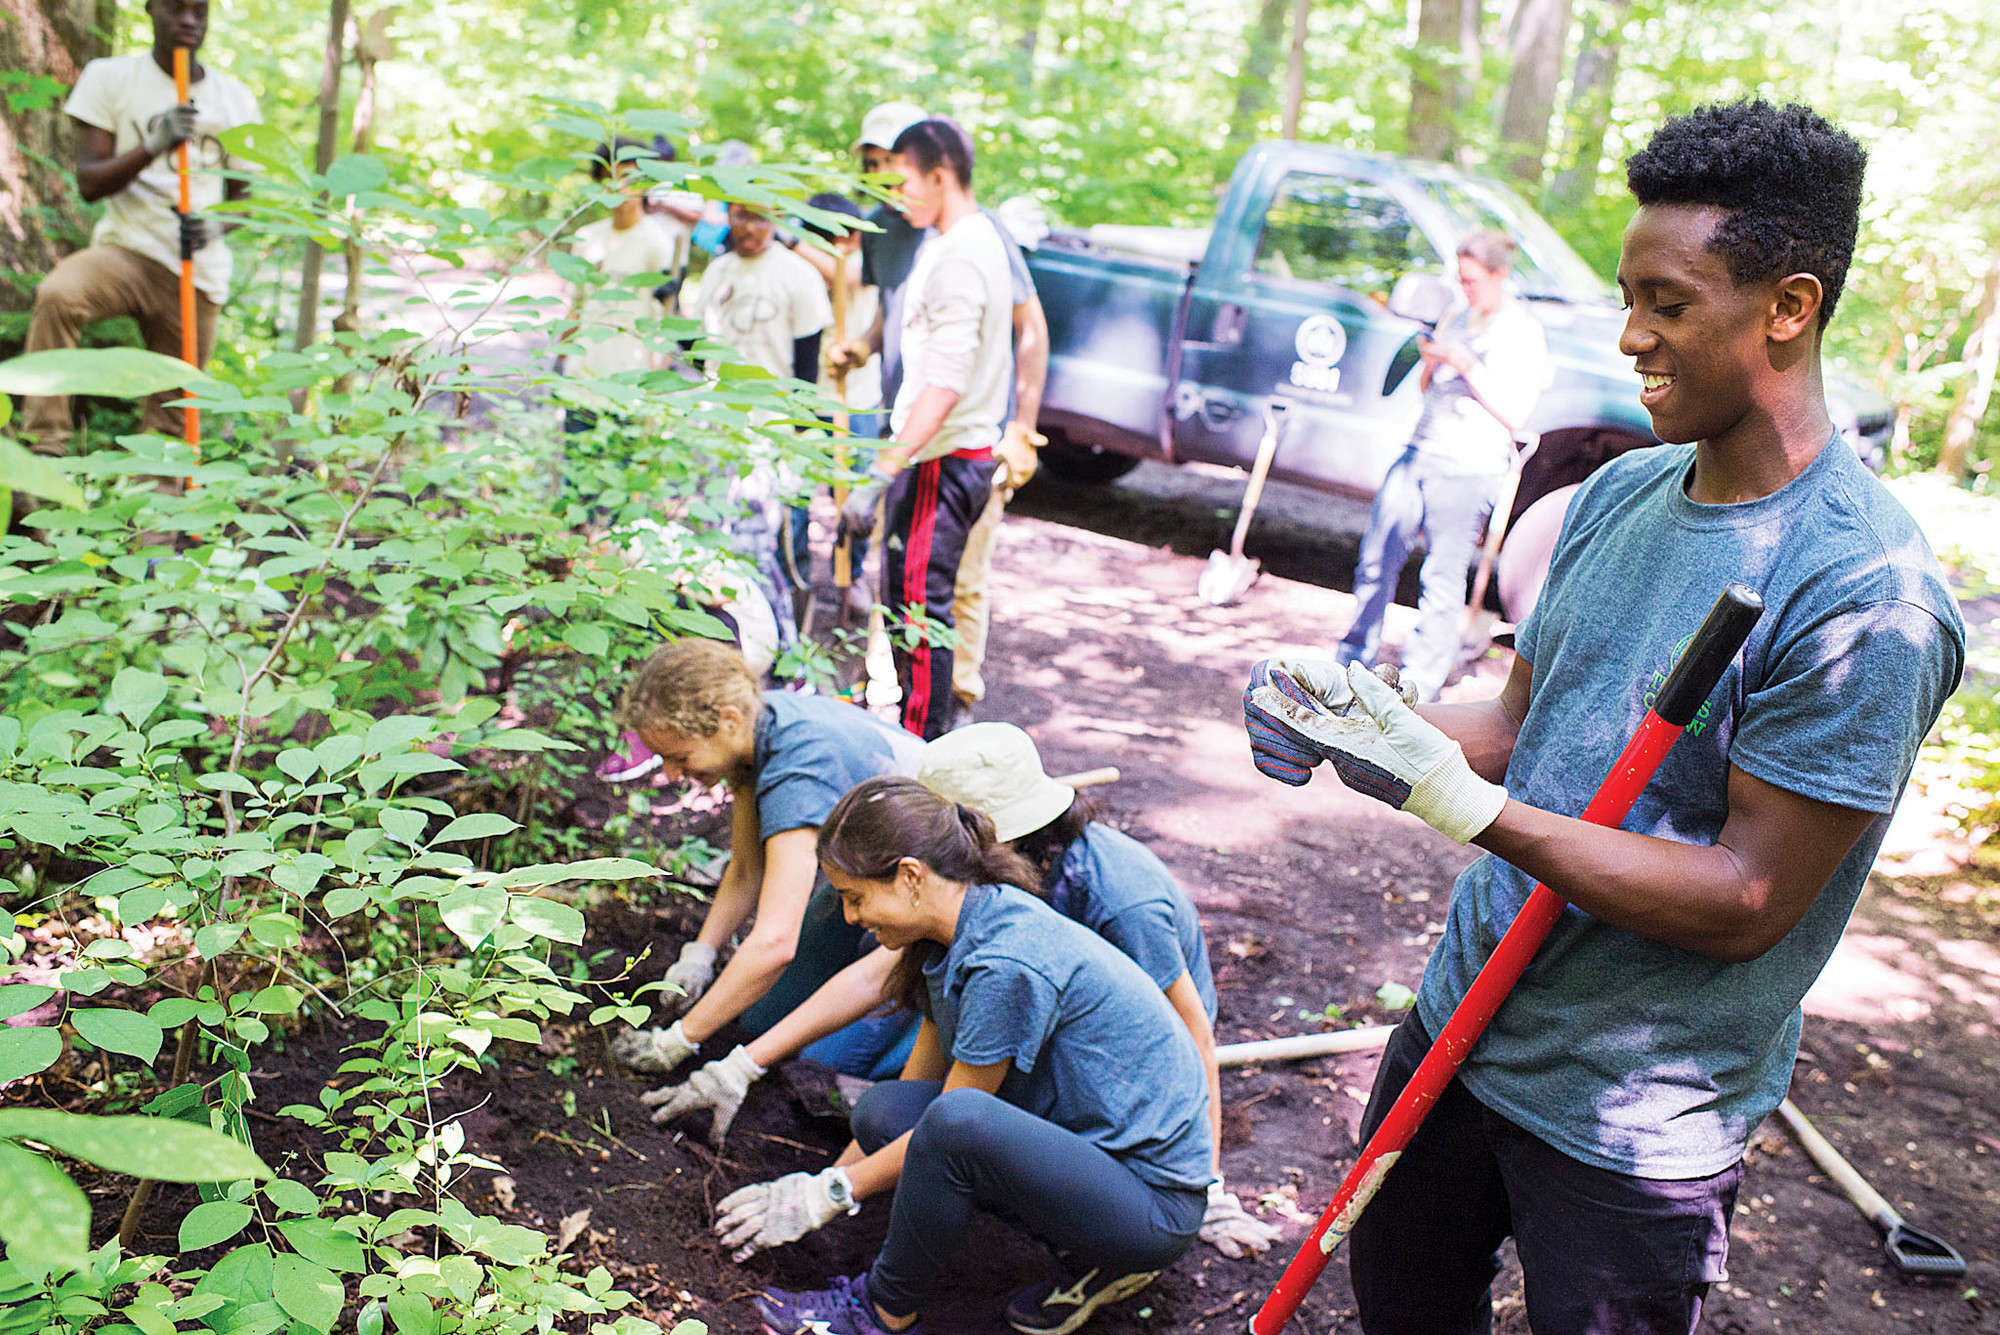 Kenyah Wiggins, a Truman High School student who lives in Coop City, helps to clear mud and weeds from an overgrown trail in Van Cortlandt Park on July 16.